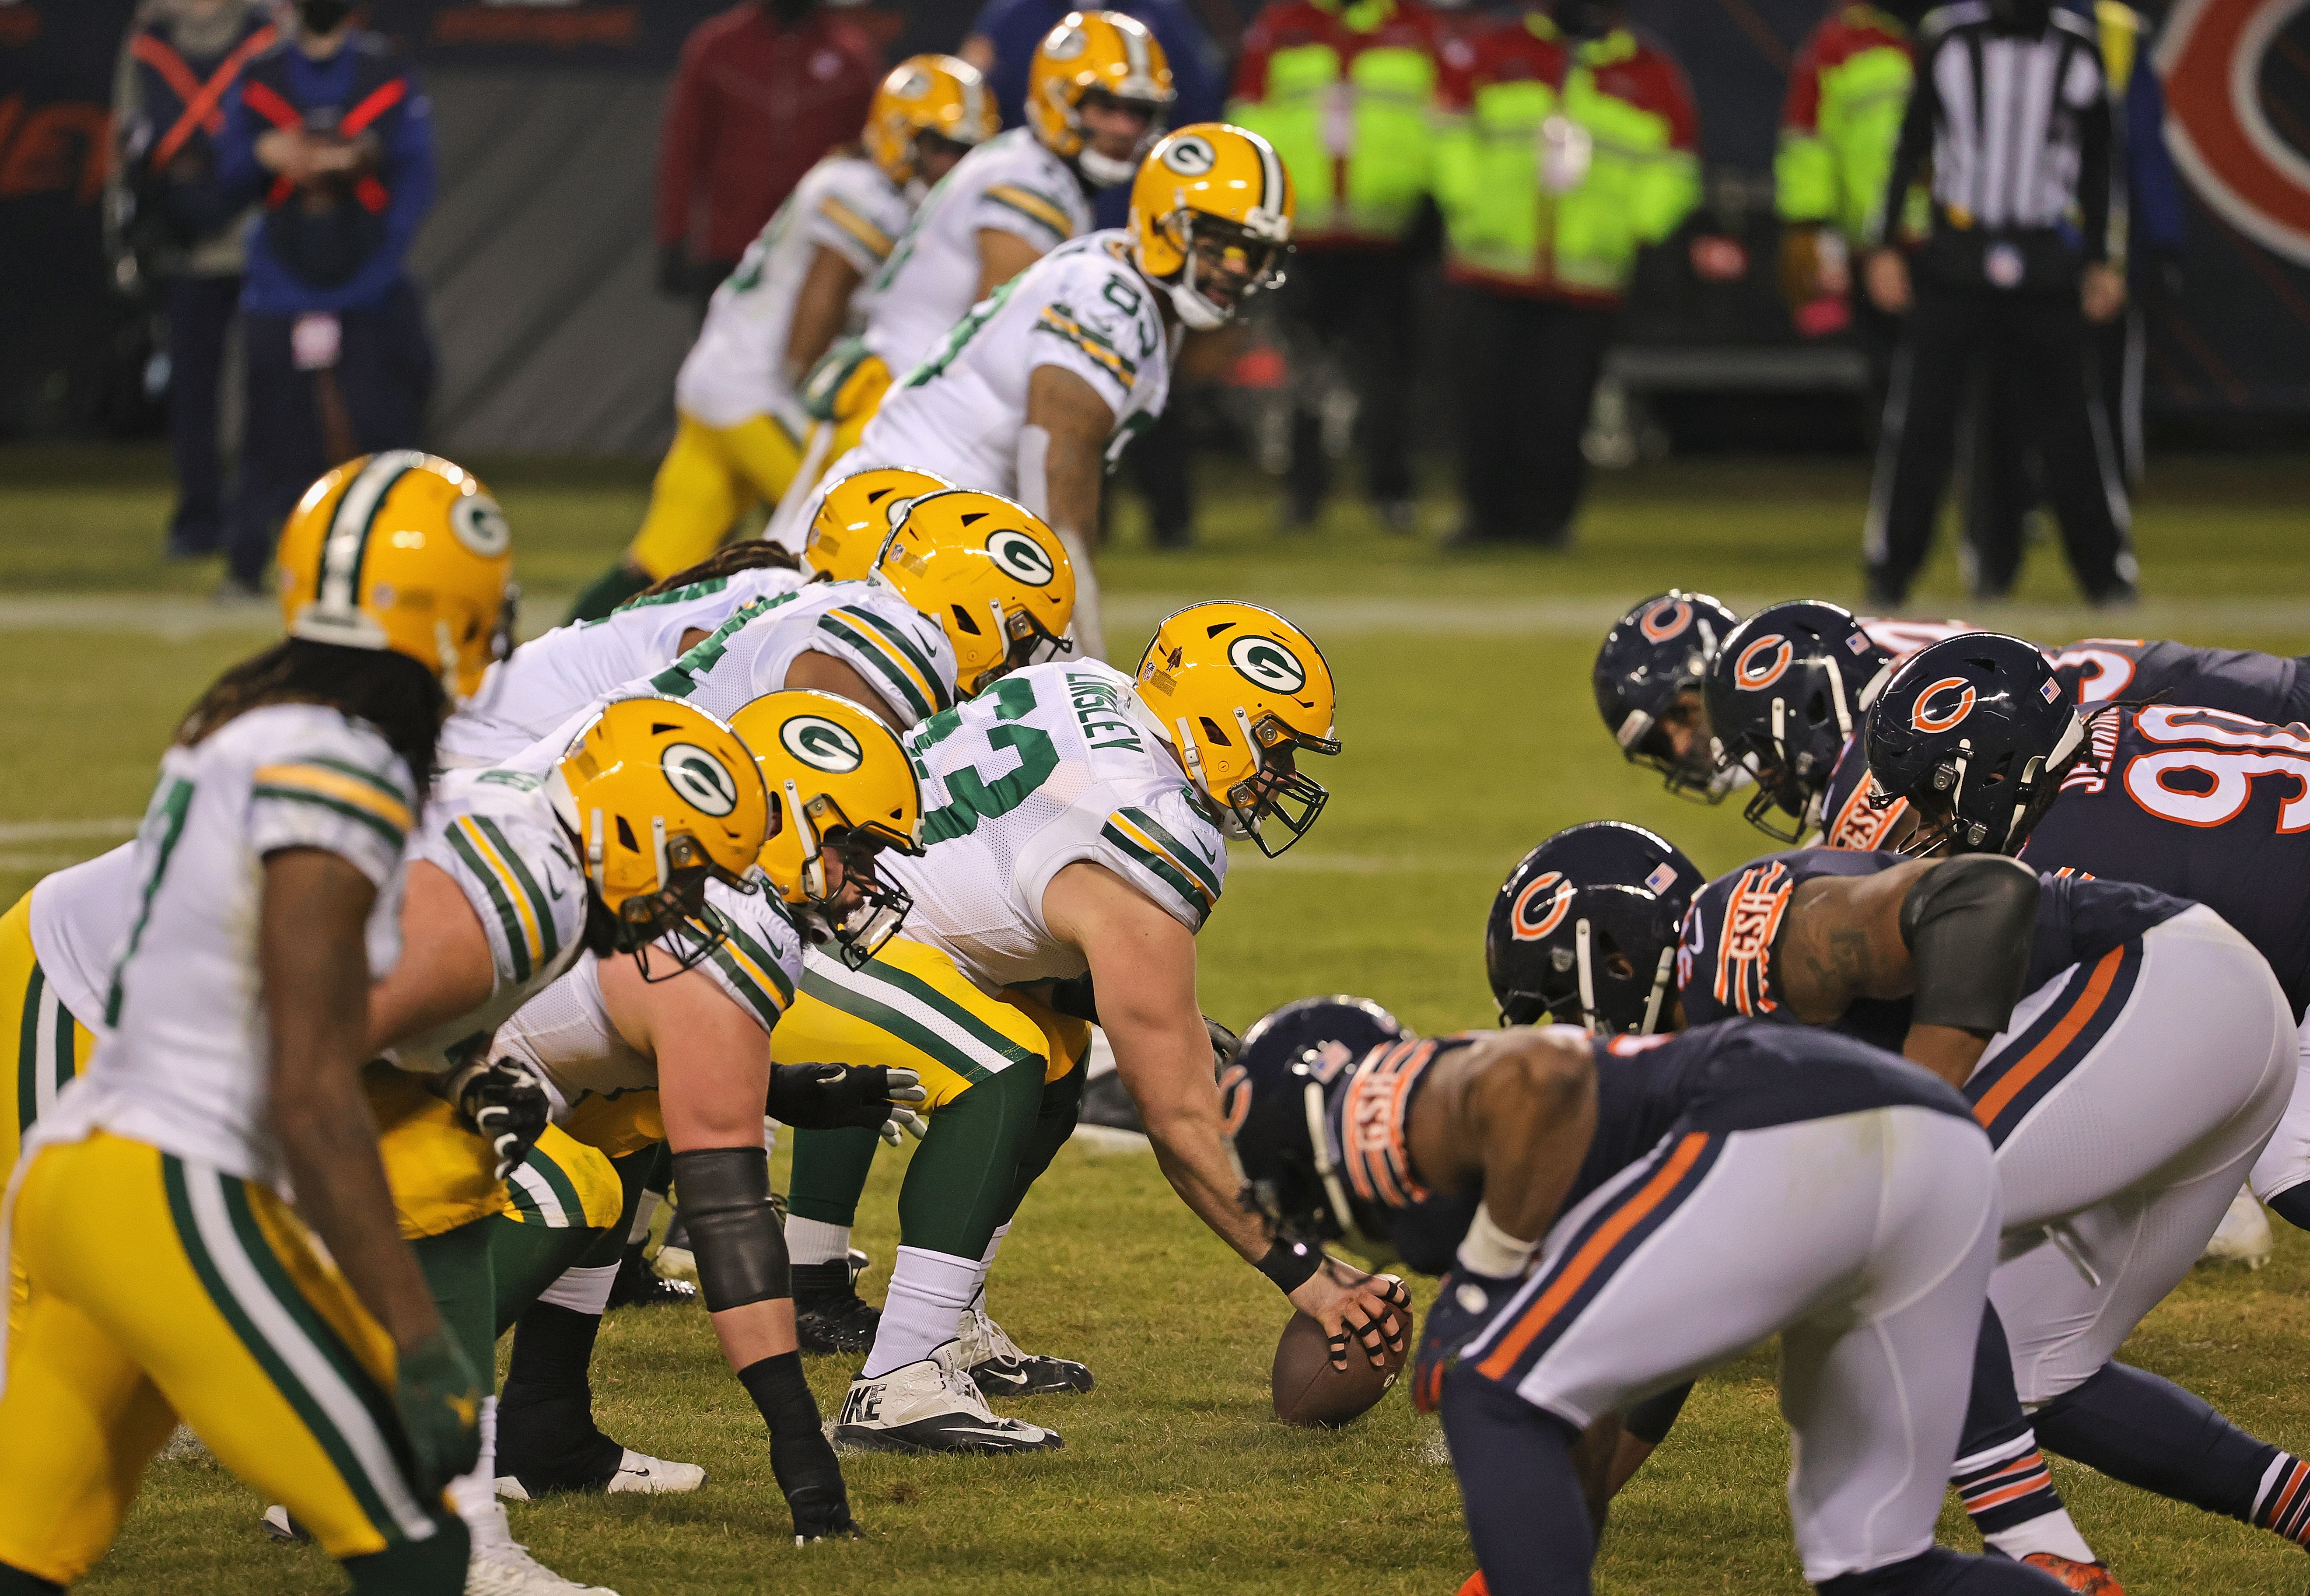 The Bears and Packers last played Jan. 3.